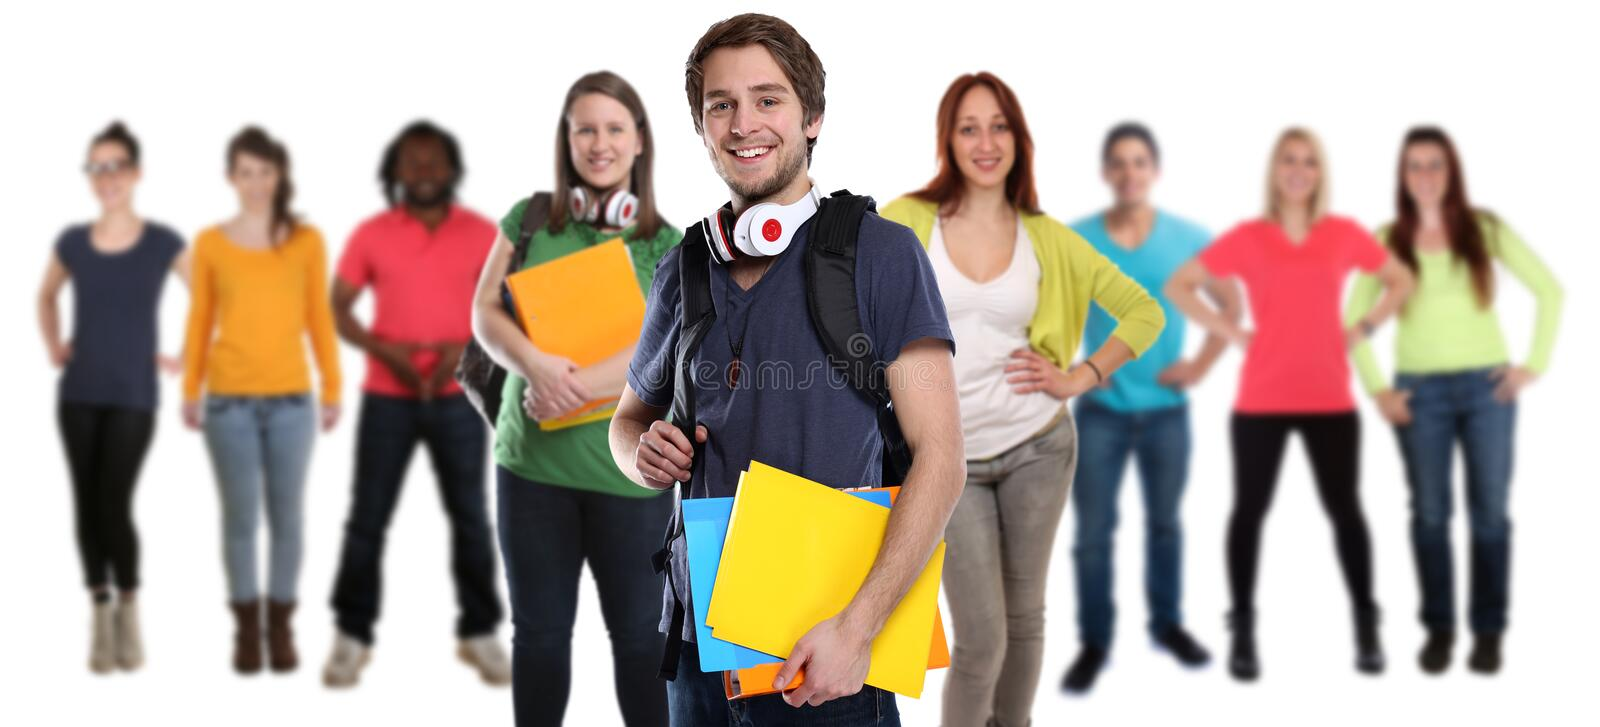 Group of students young smiling happy people isolated stock photo